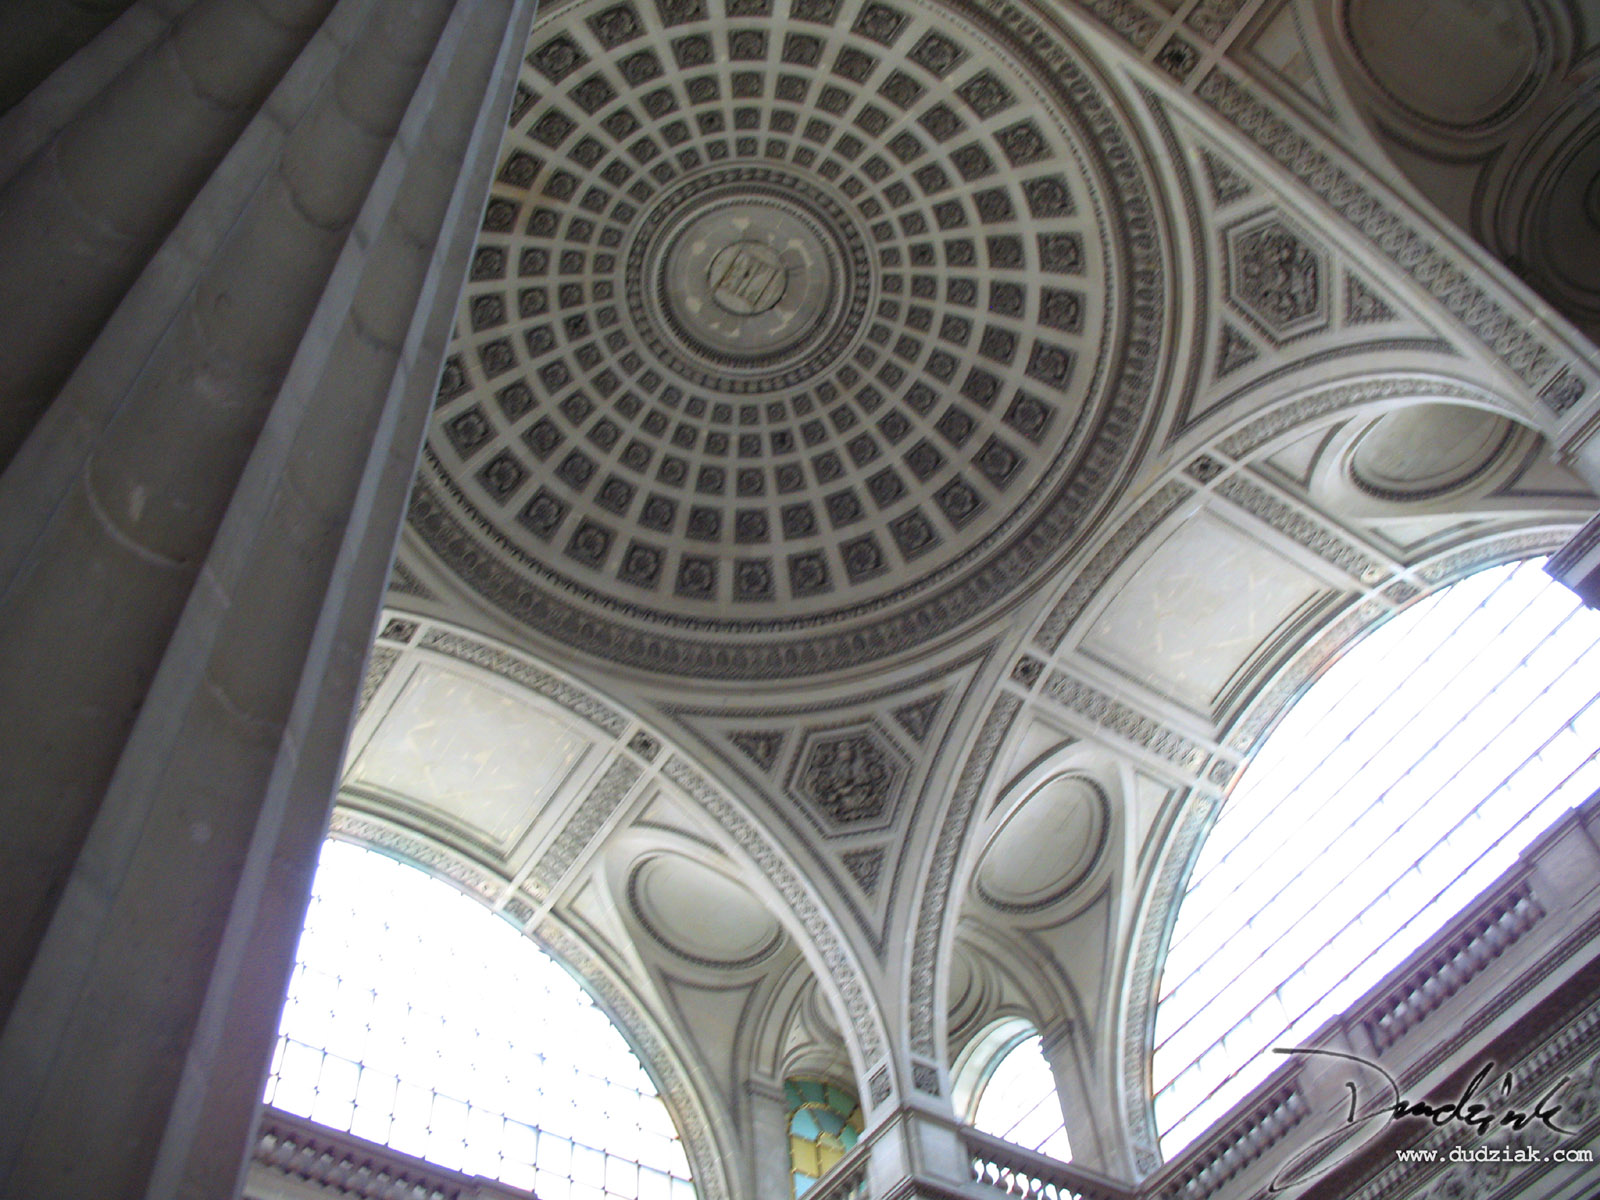 Picture of the interior of the dome of the Paris Pantheon